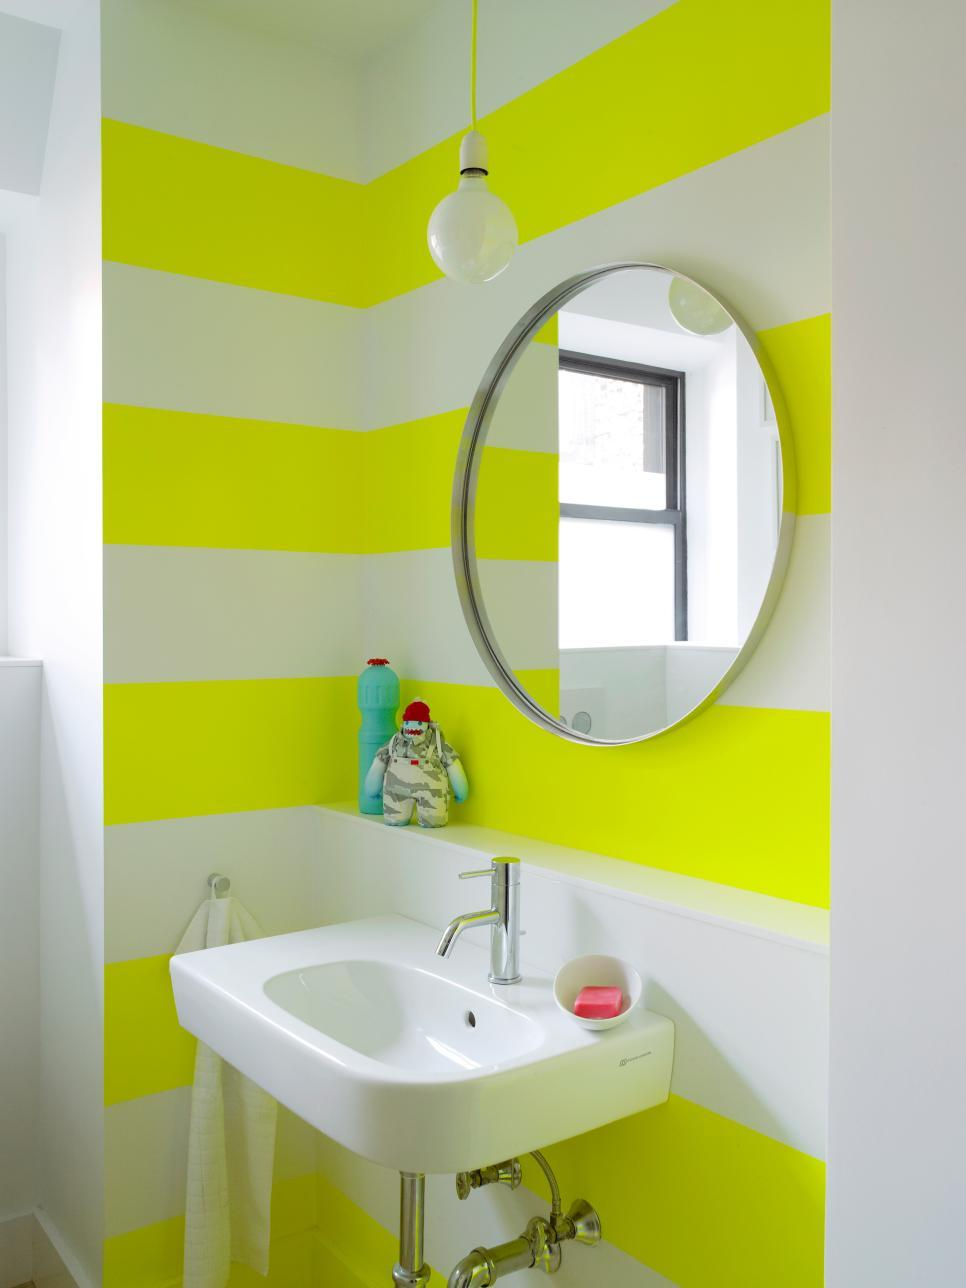 Acid green and white stripes to decorate the bathroom